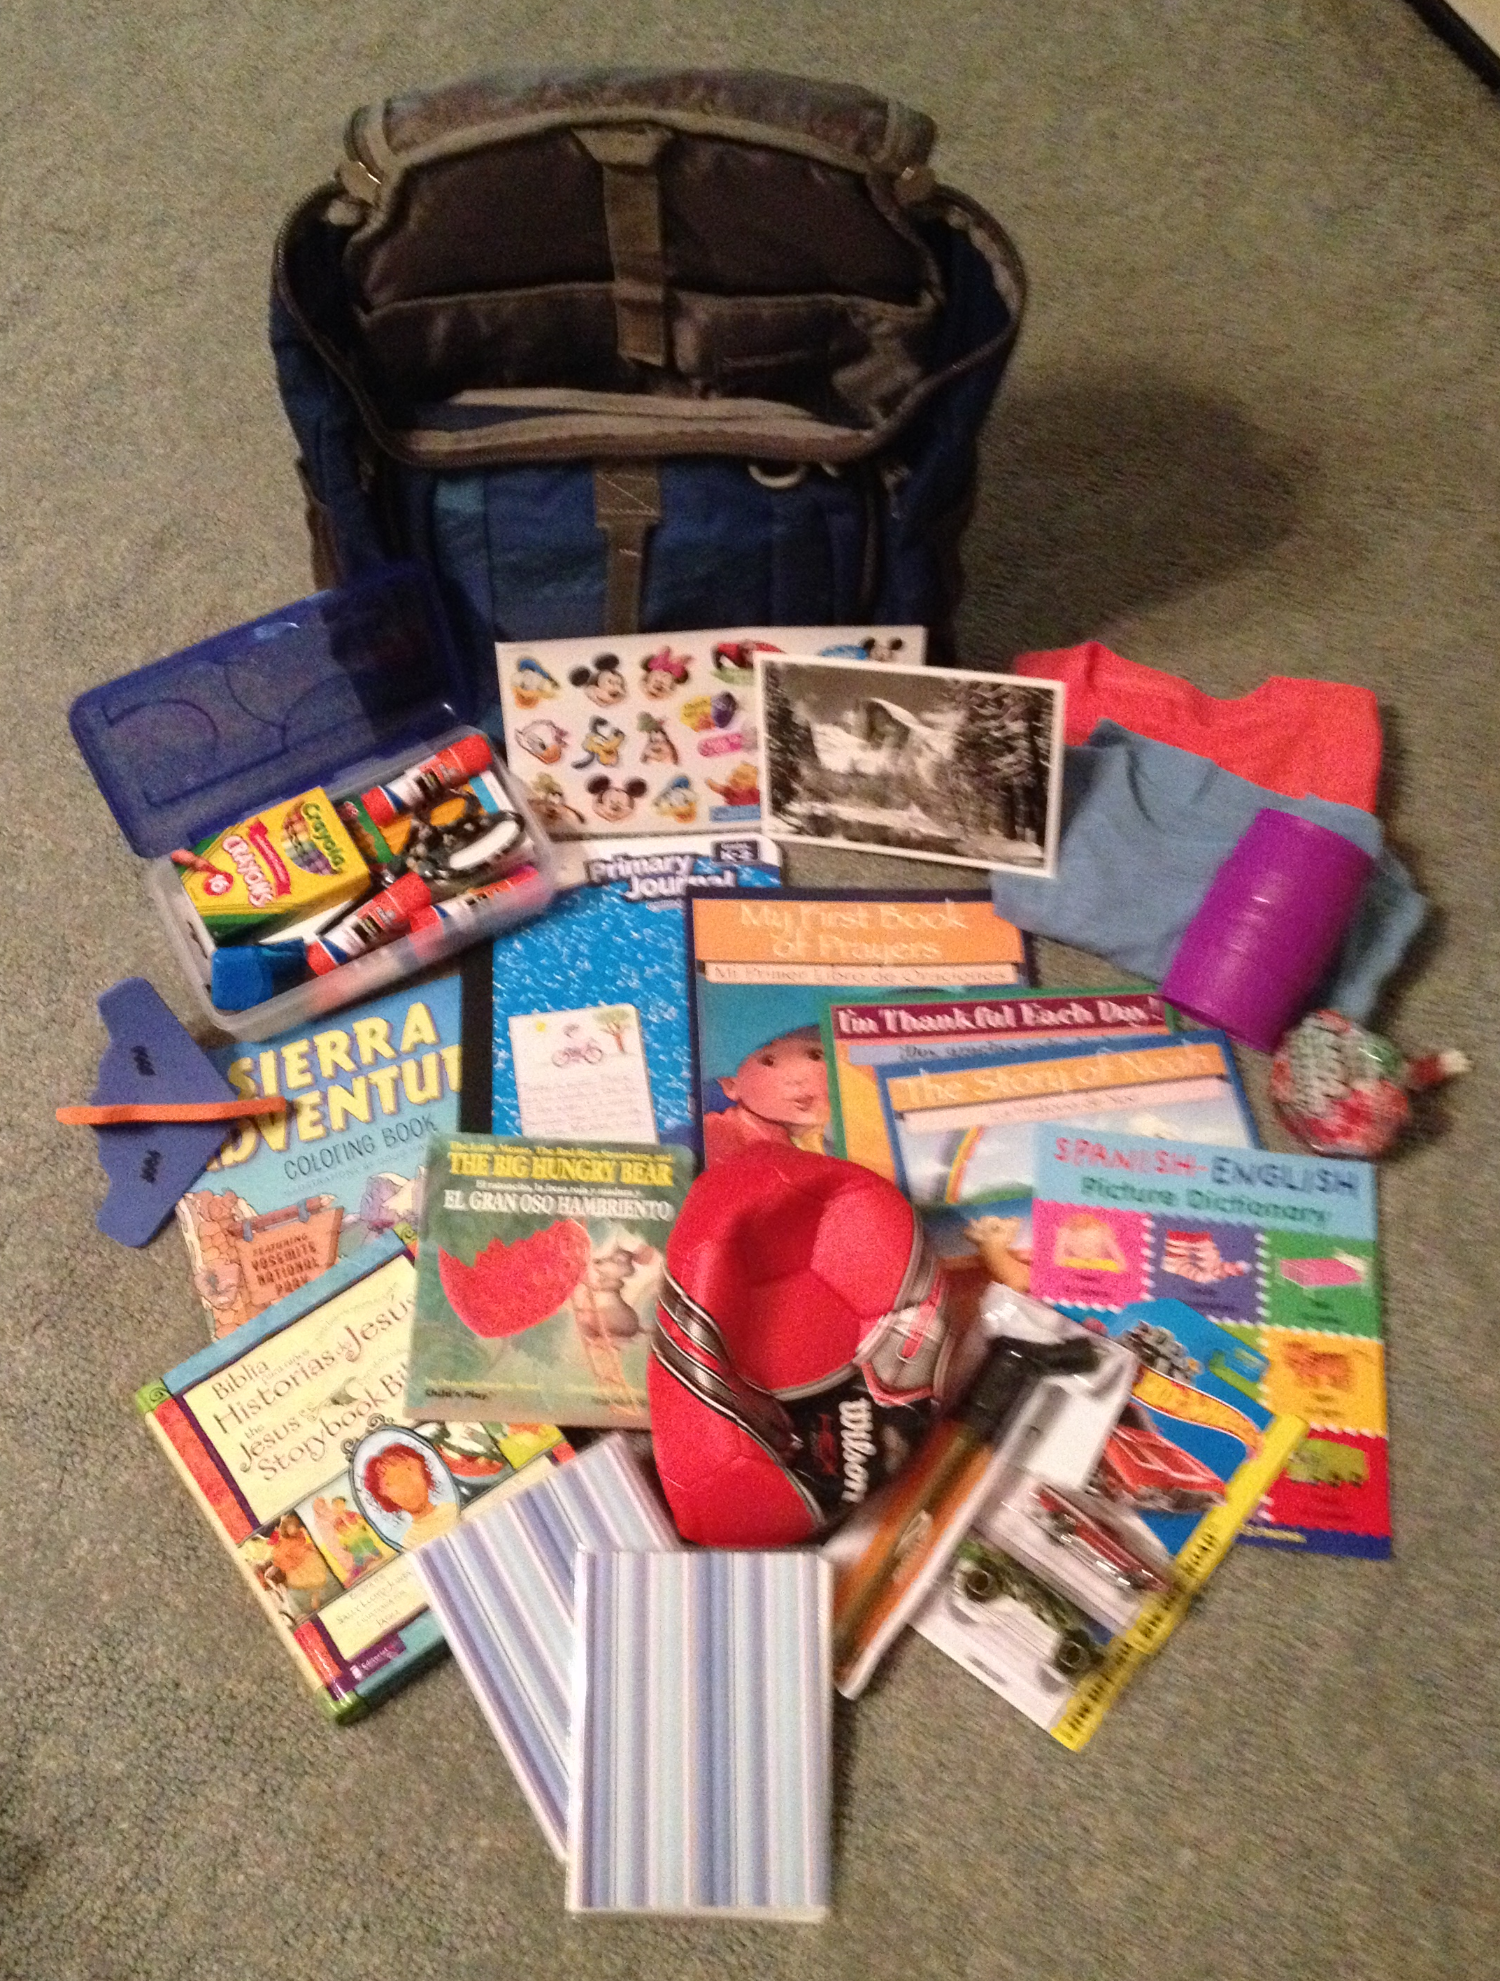 Gifts for Felix, our new Compassion sponsored child we will be visiting with on Saturday!